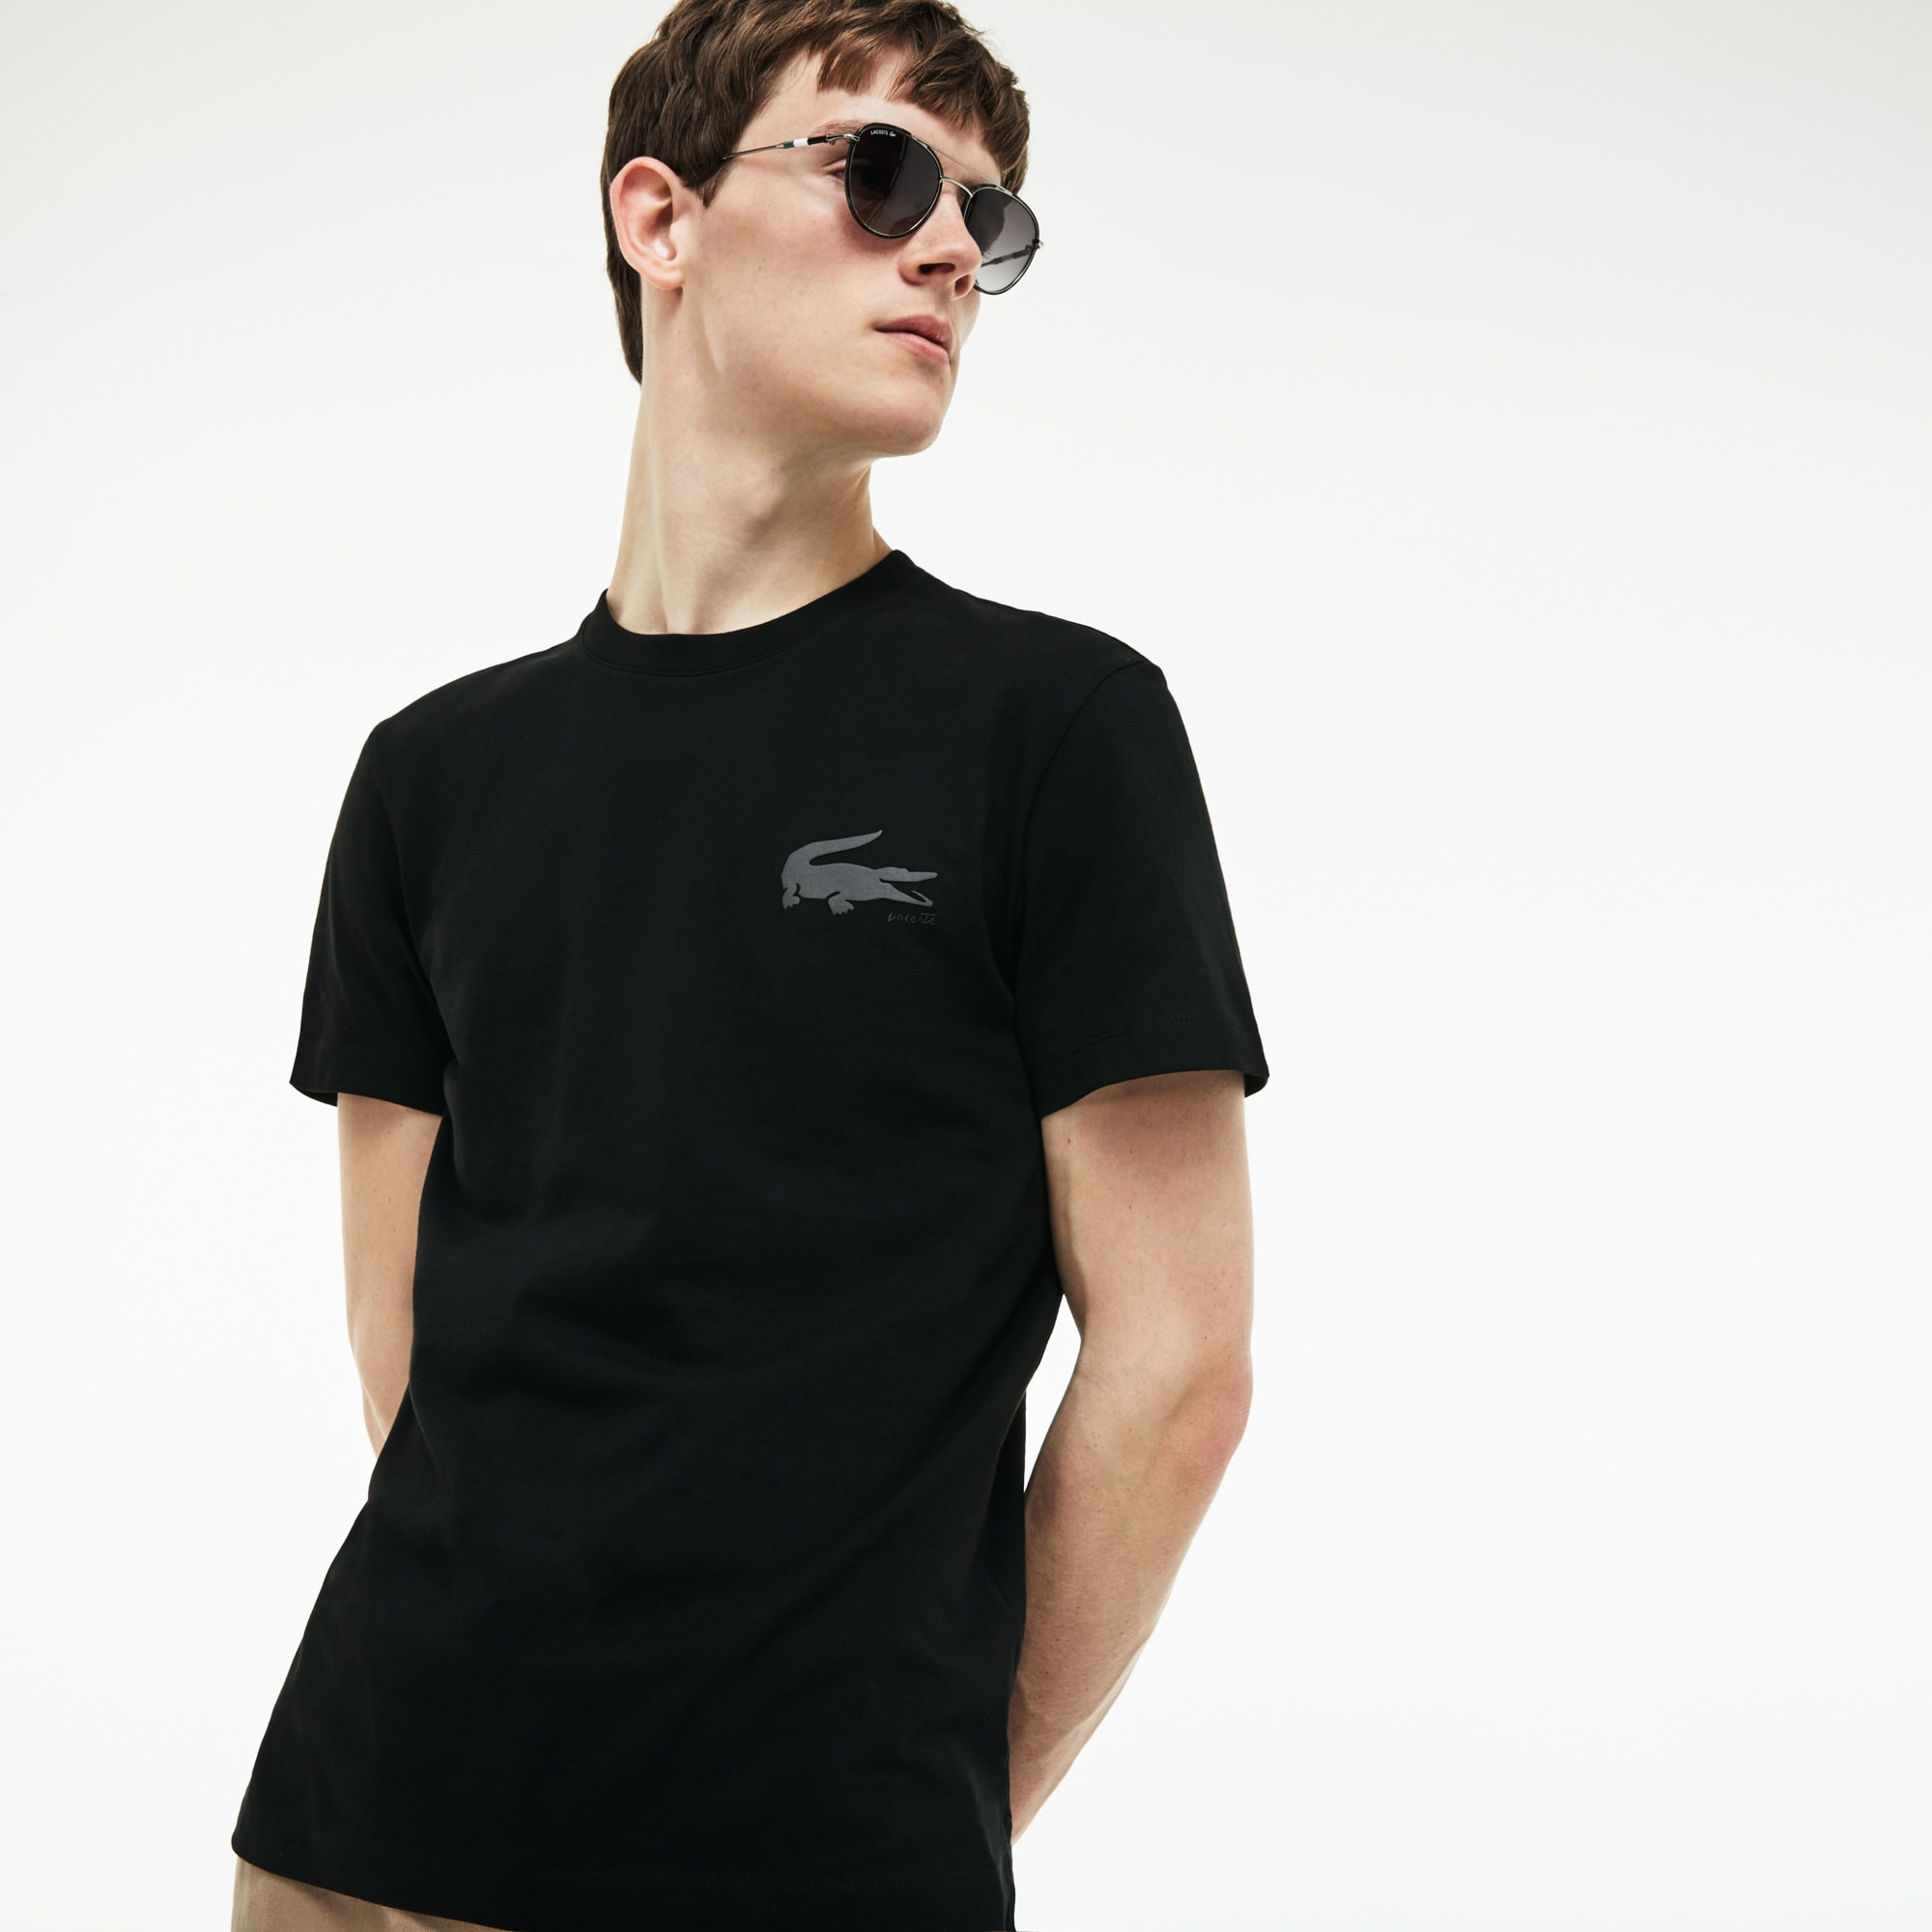 Men's Crocodile Lettering T-Shirt